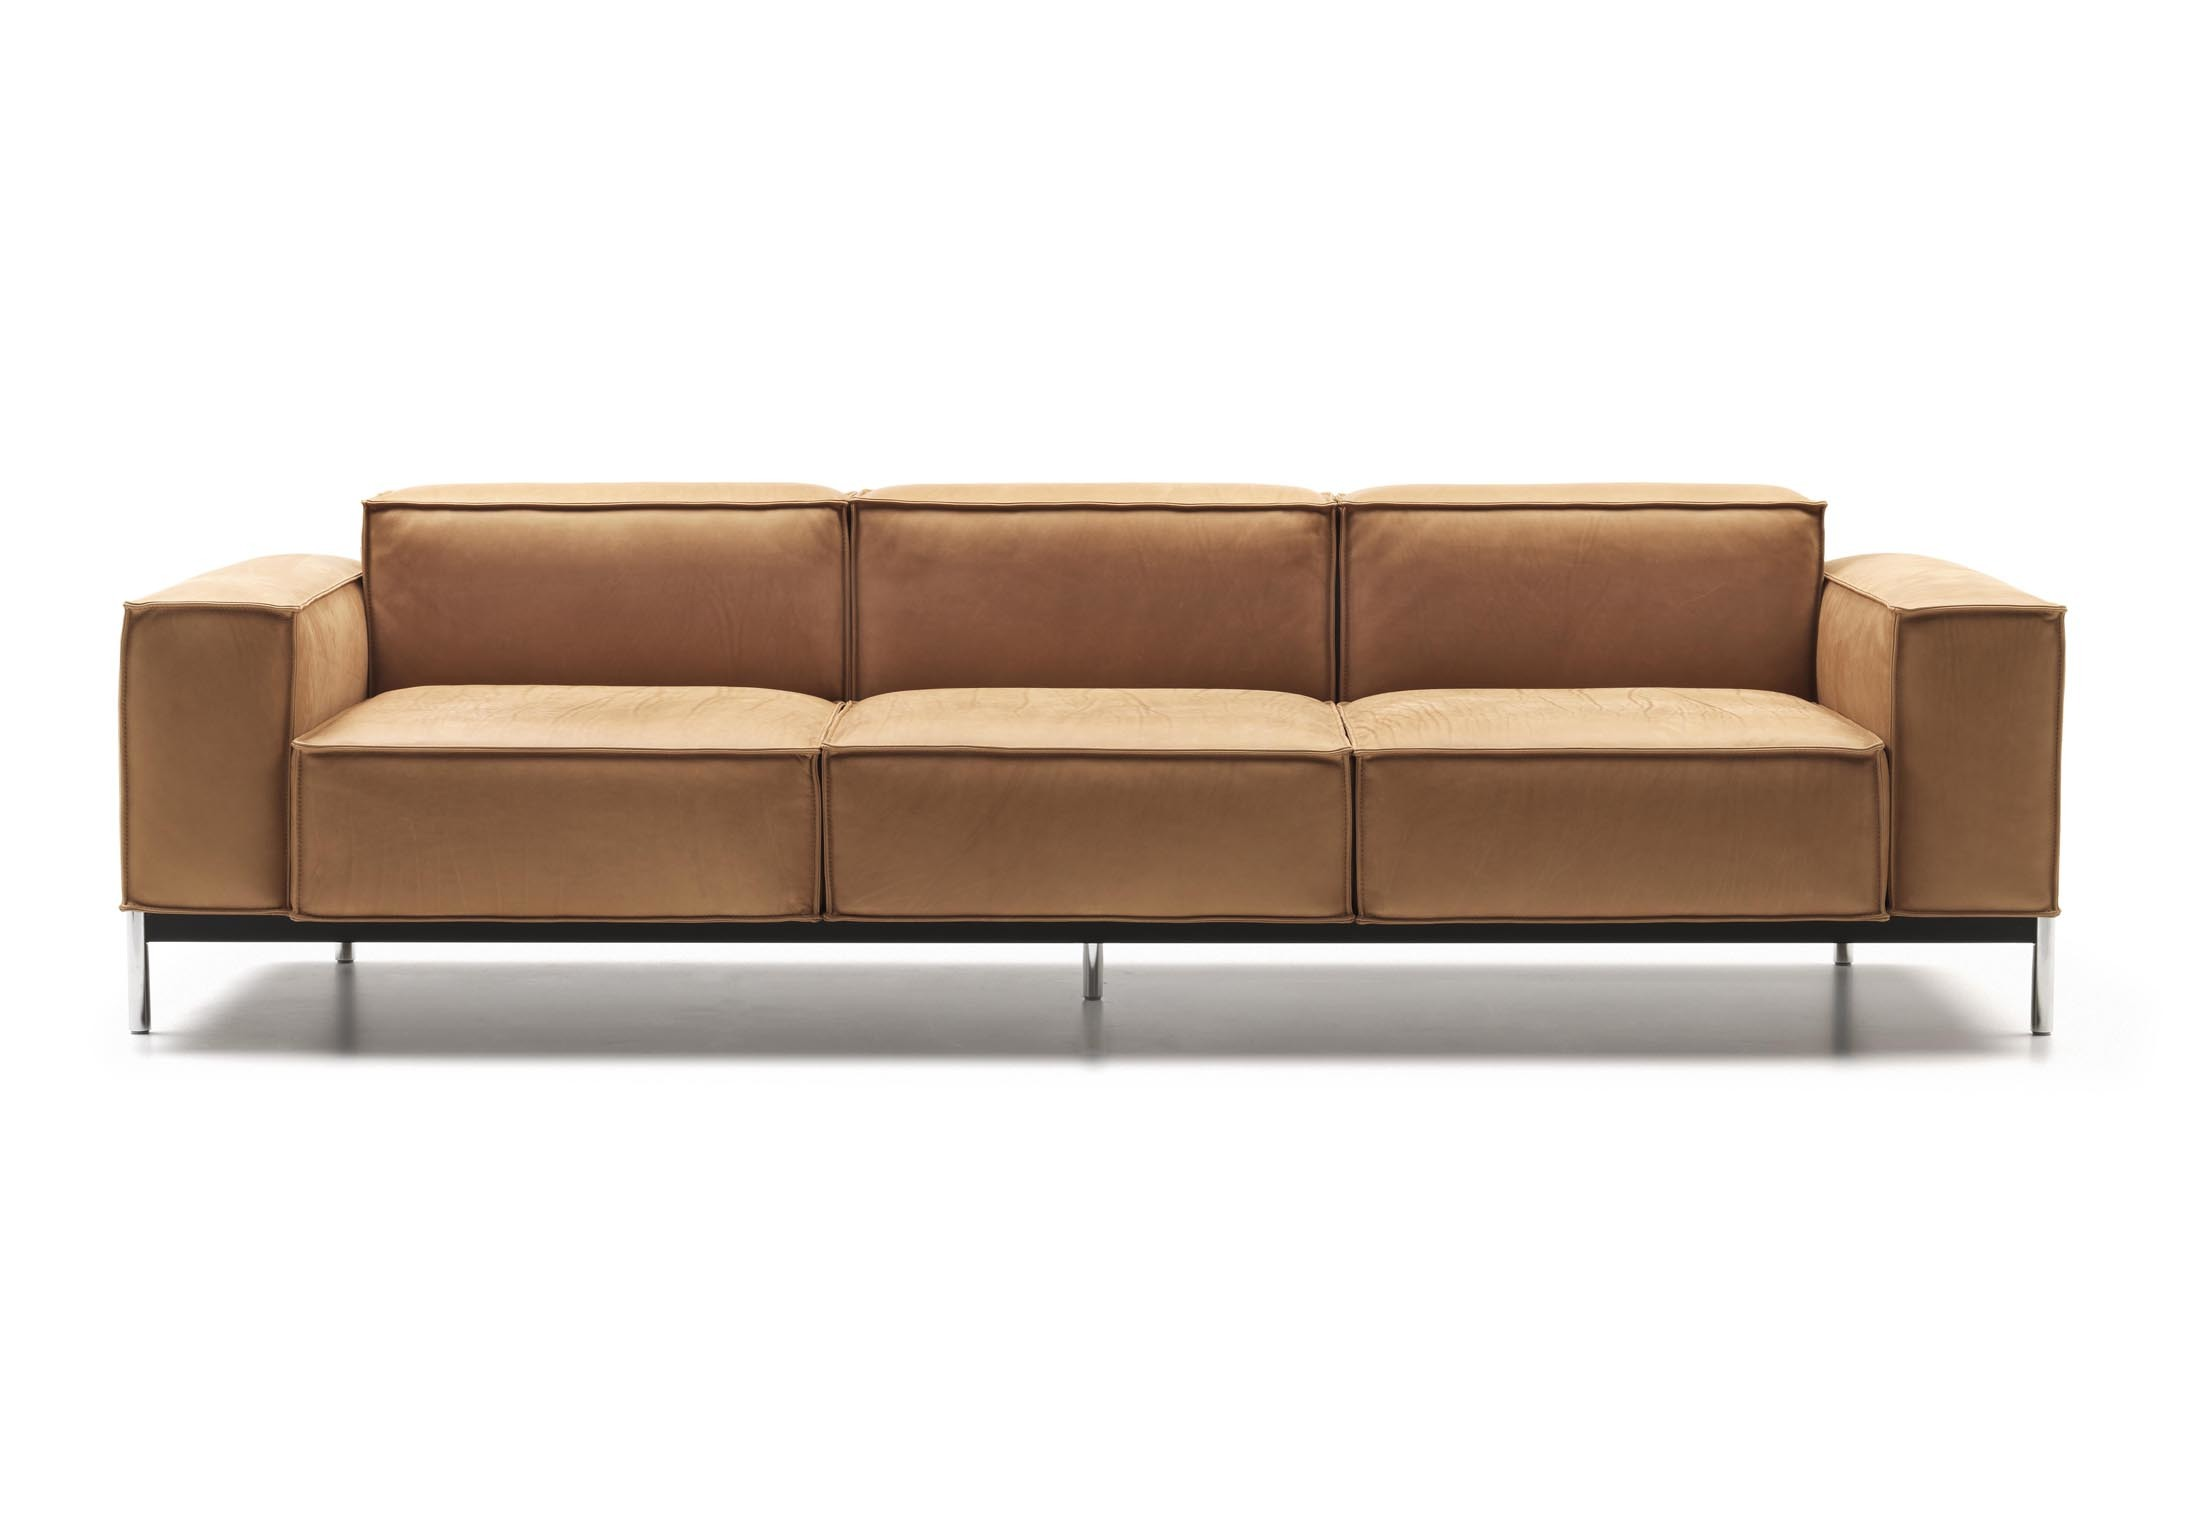 DS-22 sofa by de Sede | STYLEPARK